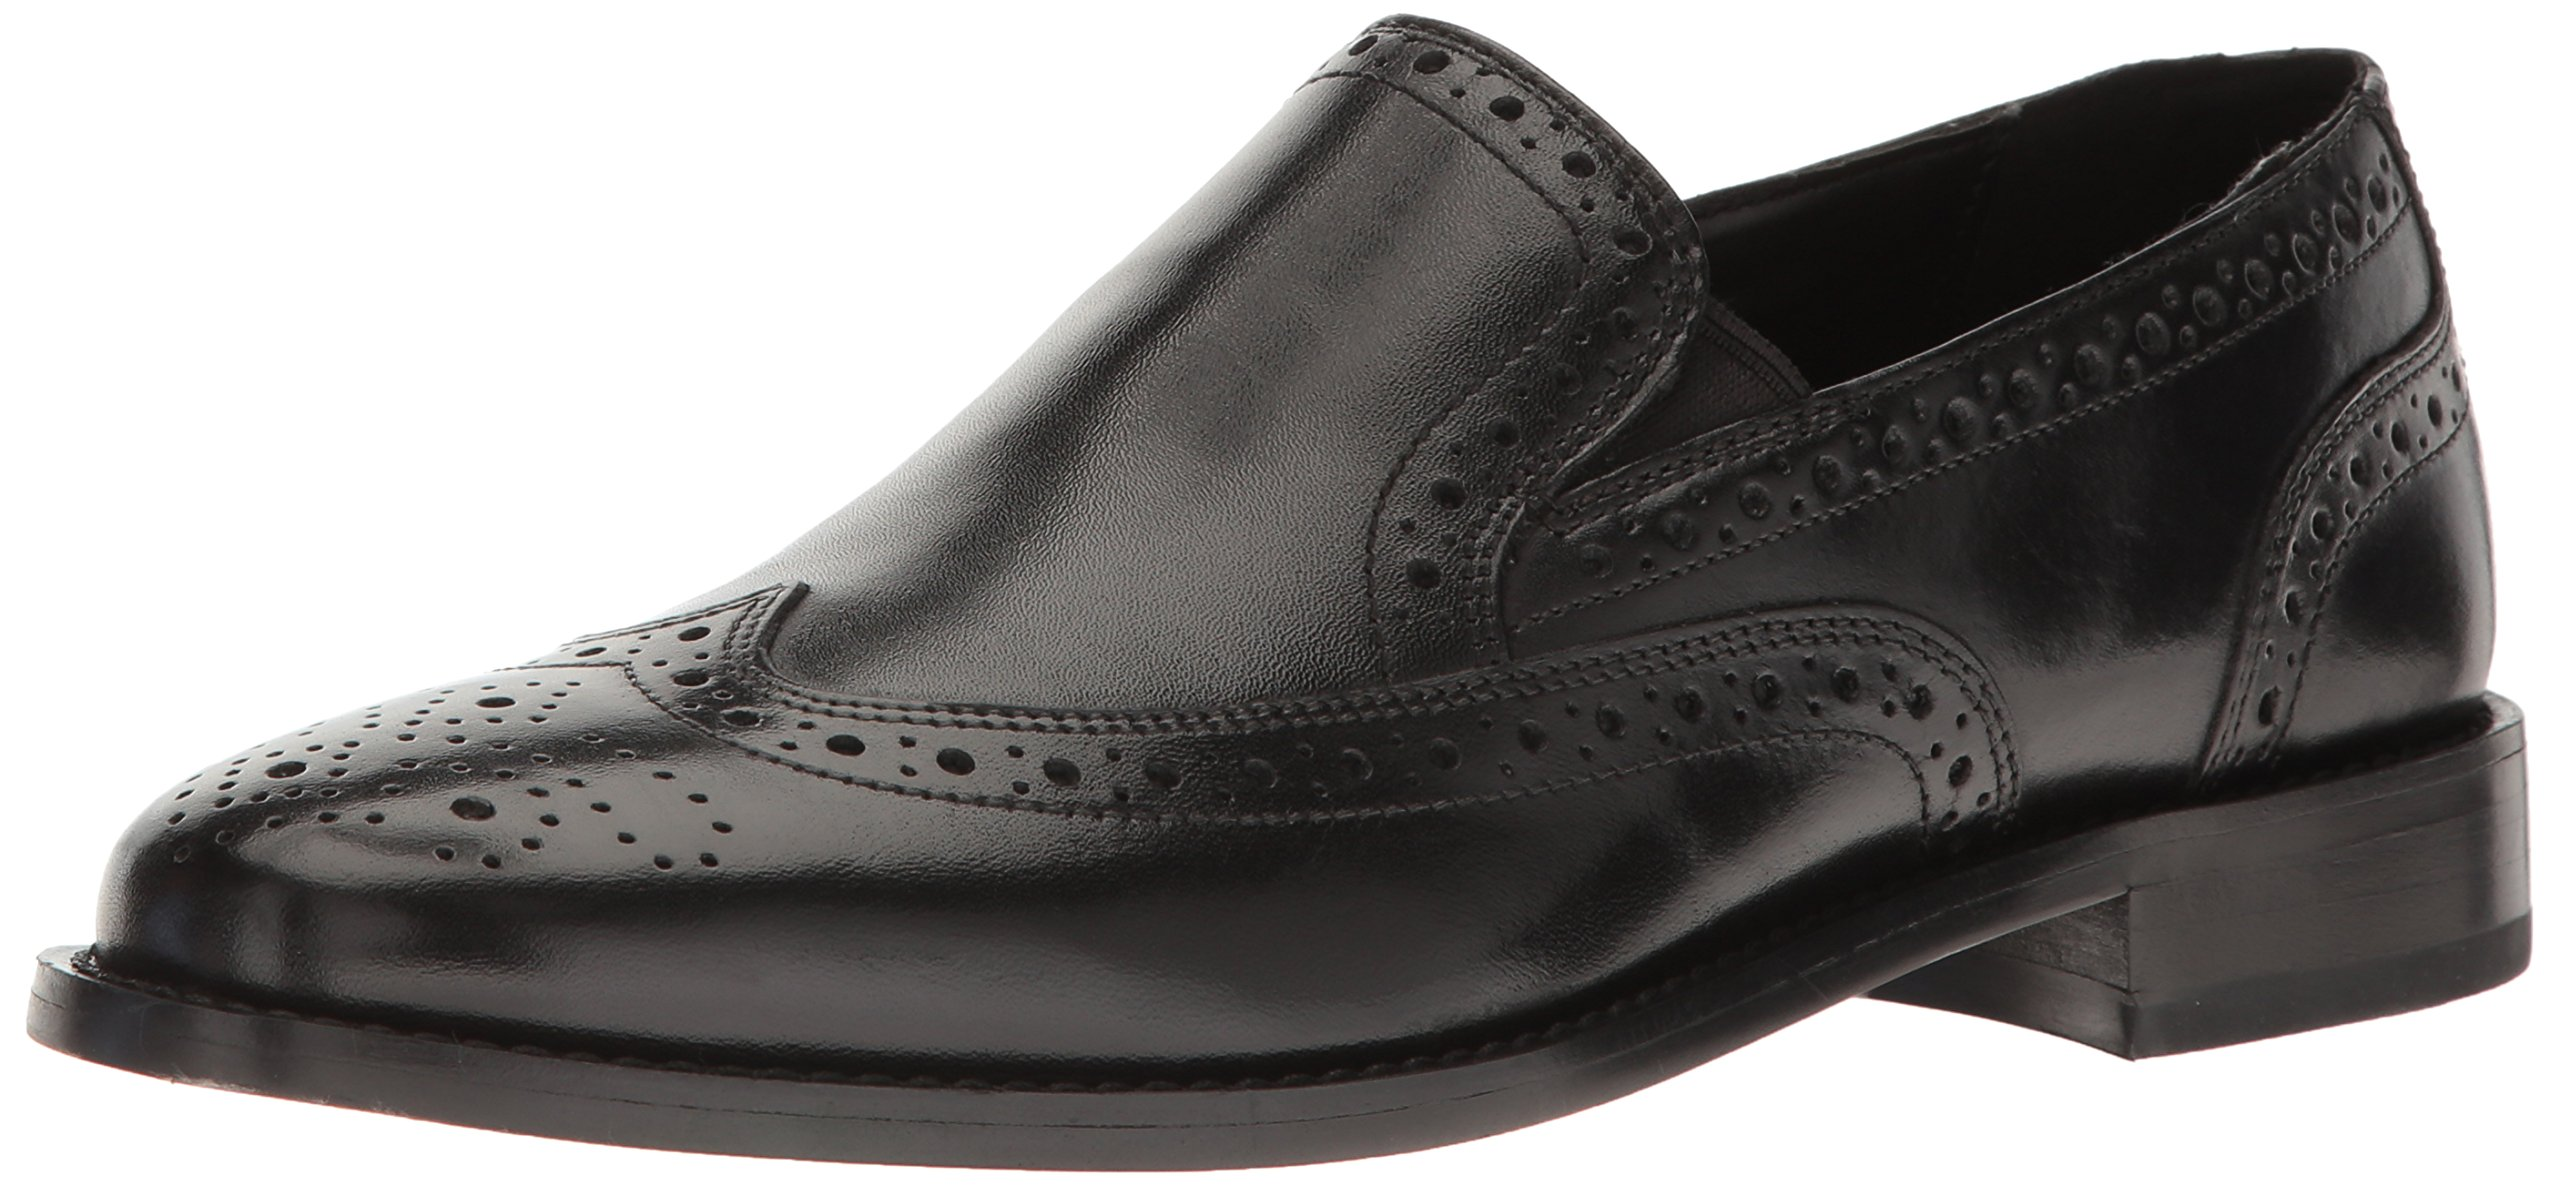 Nunn Bush Men's Norris Slip-on Loafer, Black, 9.5 M US